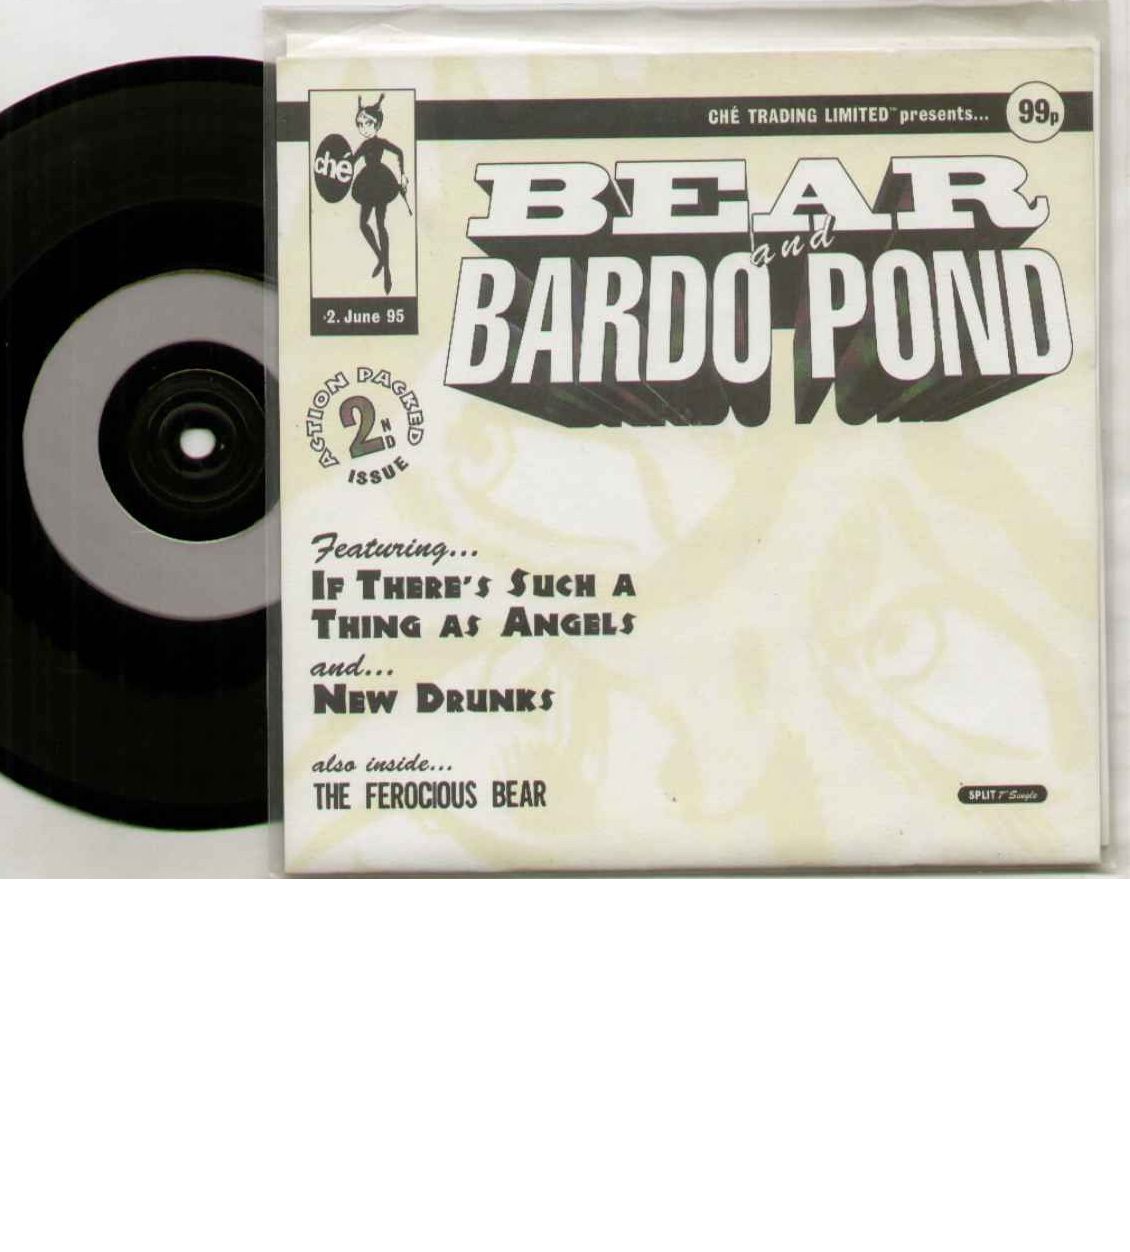 Bardo Pond Big Laughing Jym